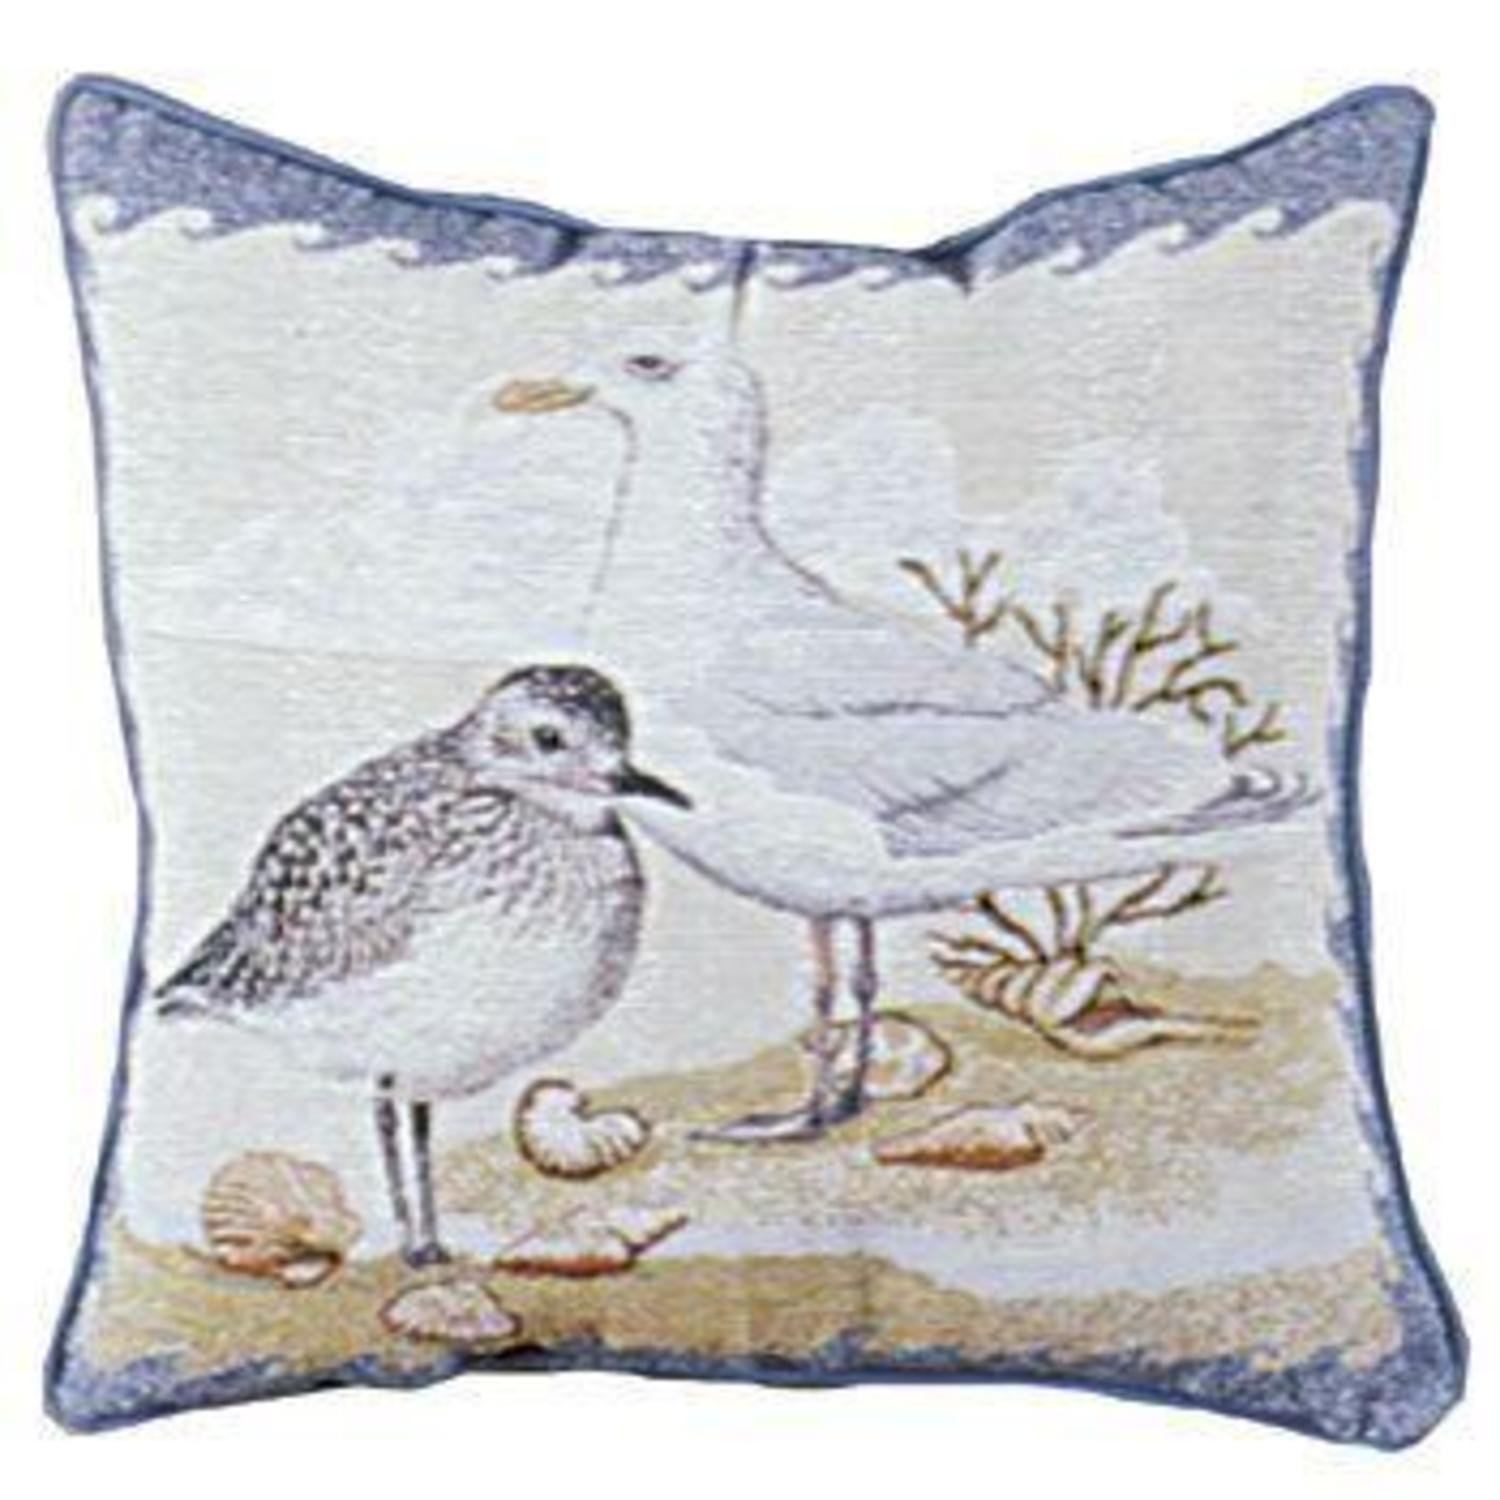 themed beach coastal to pillow euro house on pillows shams cases the use large of size pillowcase covers